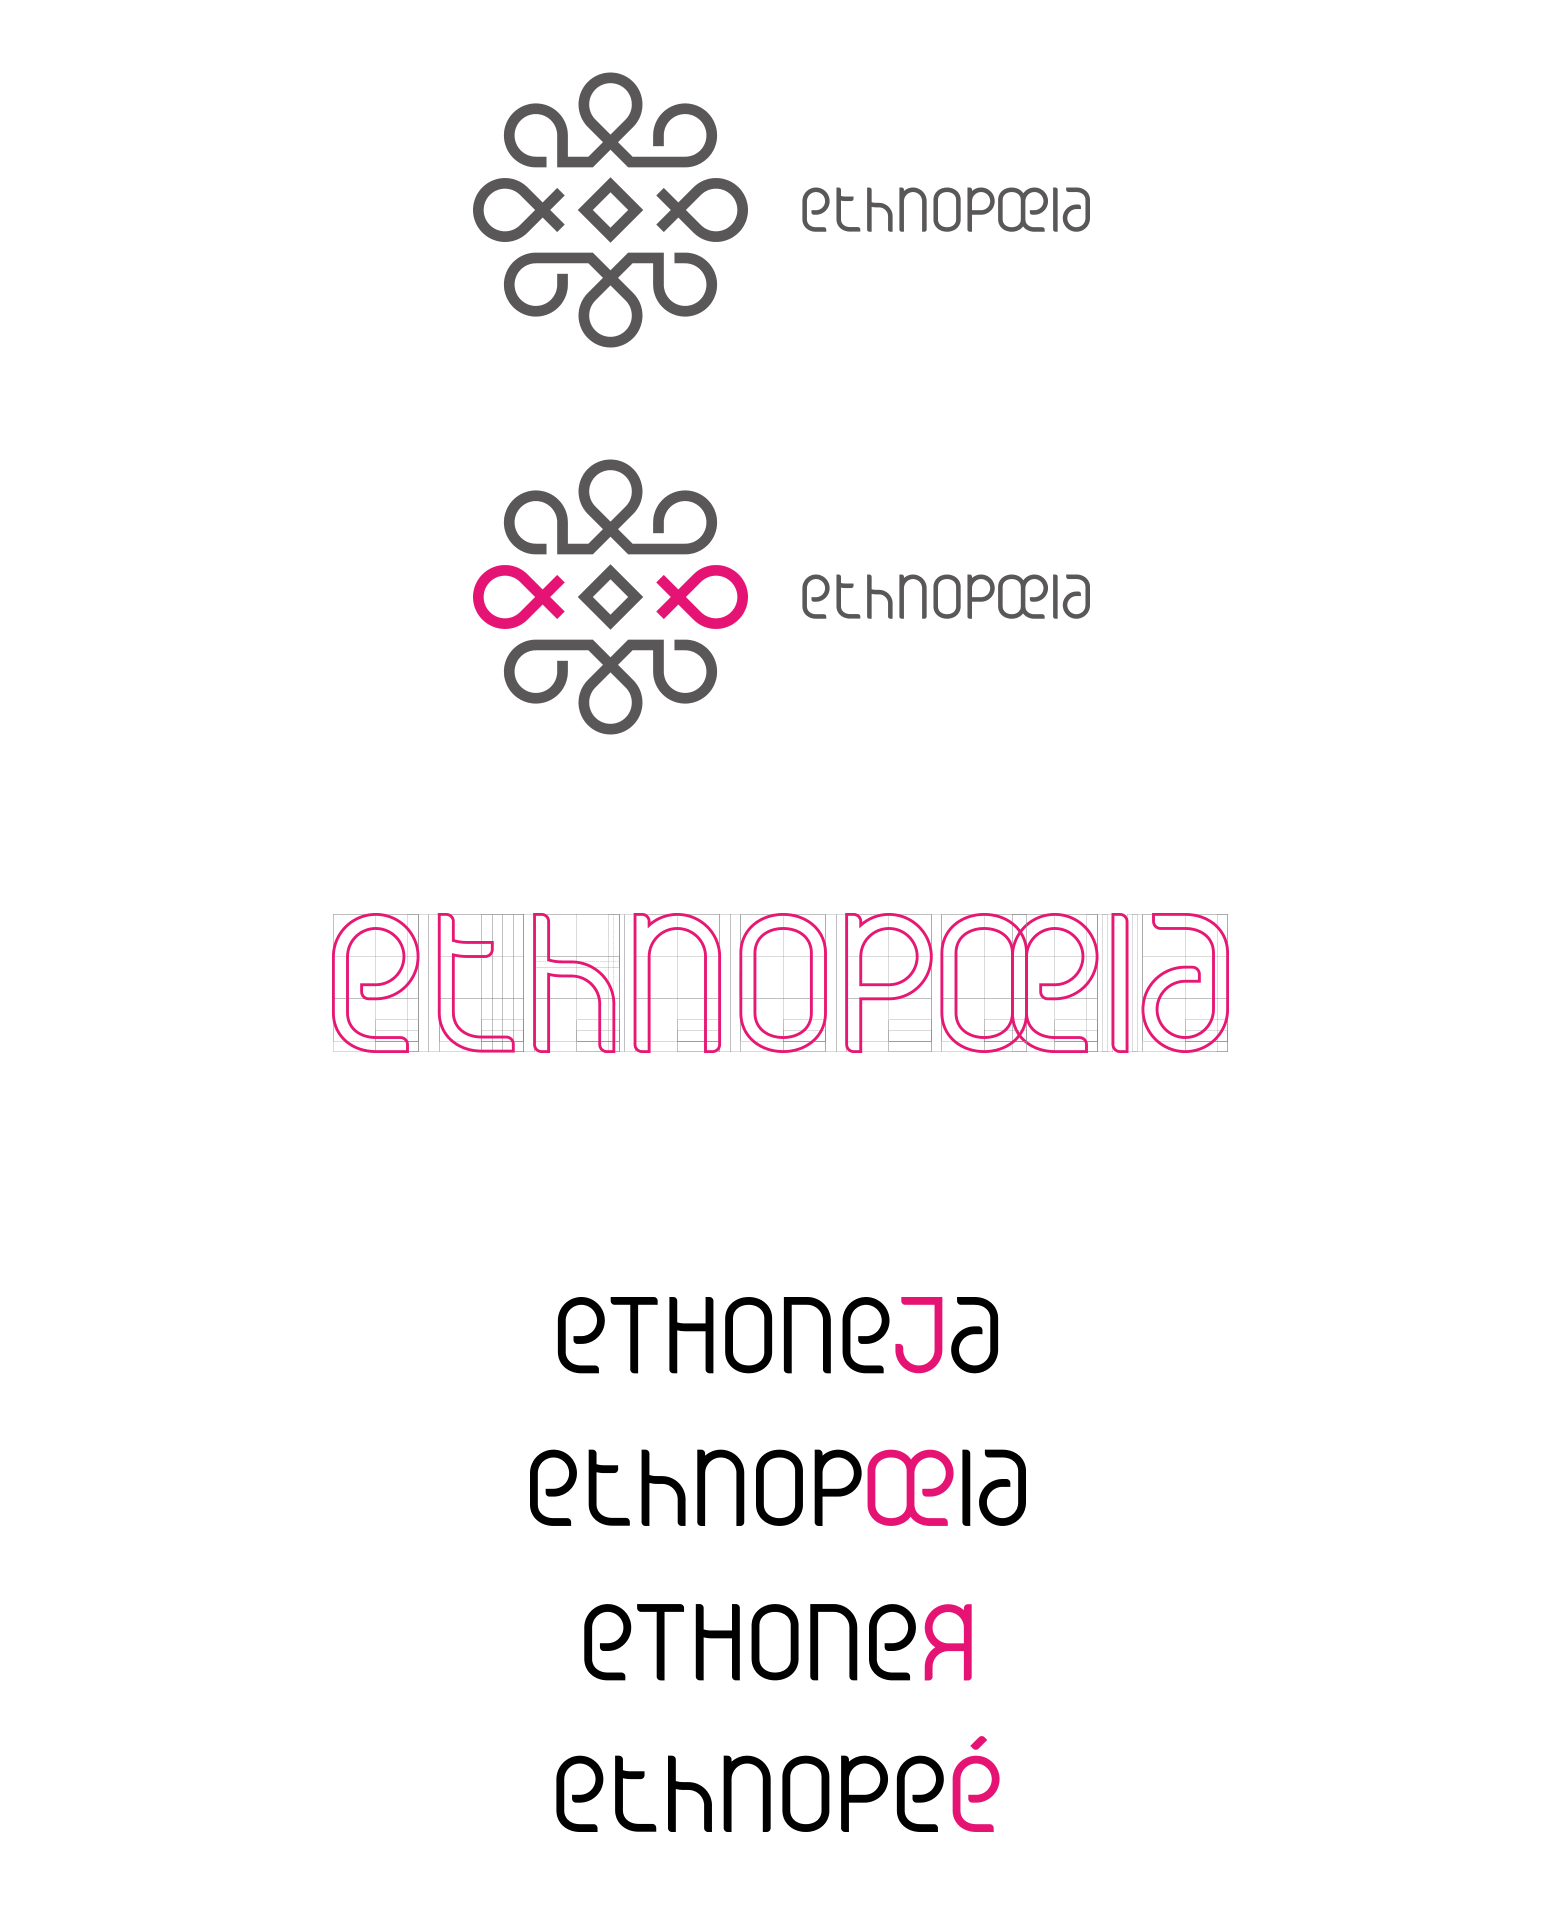 Ethnopoeia-logo-and-typography